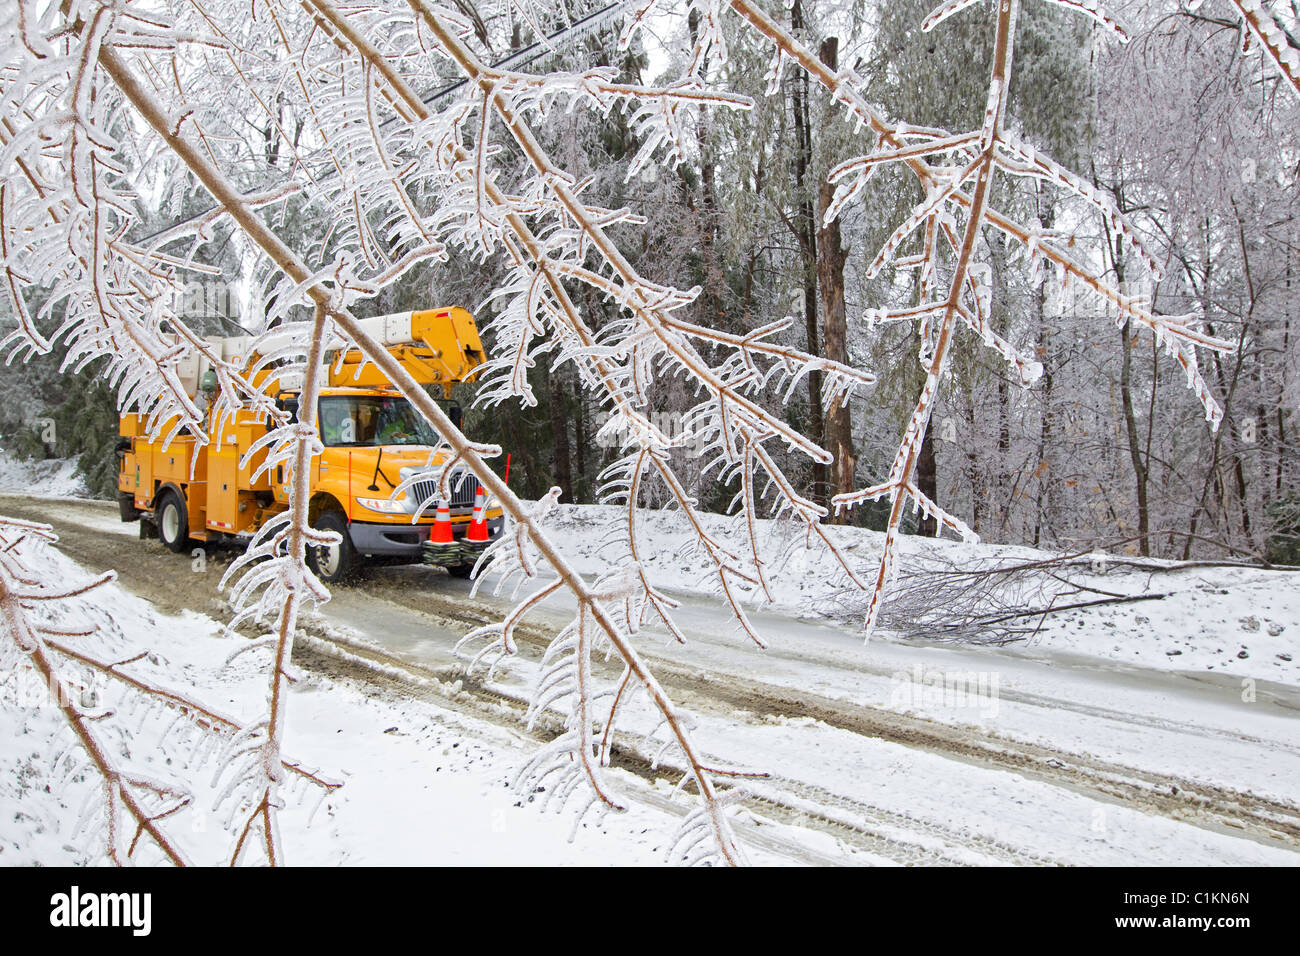 Yellow utility truck drives on snowy winter forest road after ice storm - Stock Image